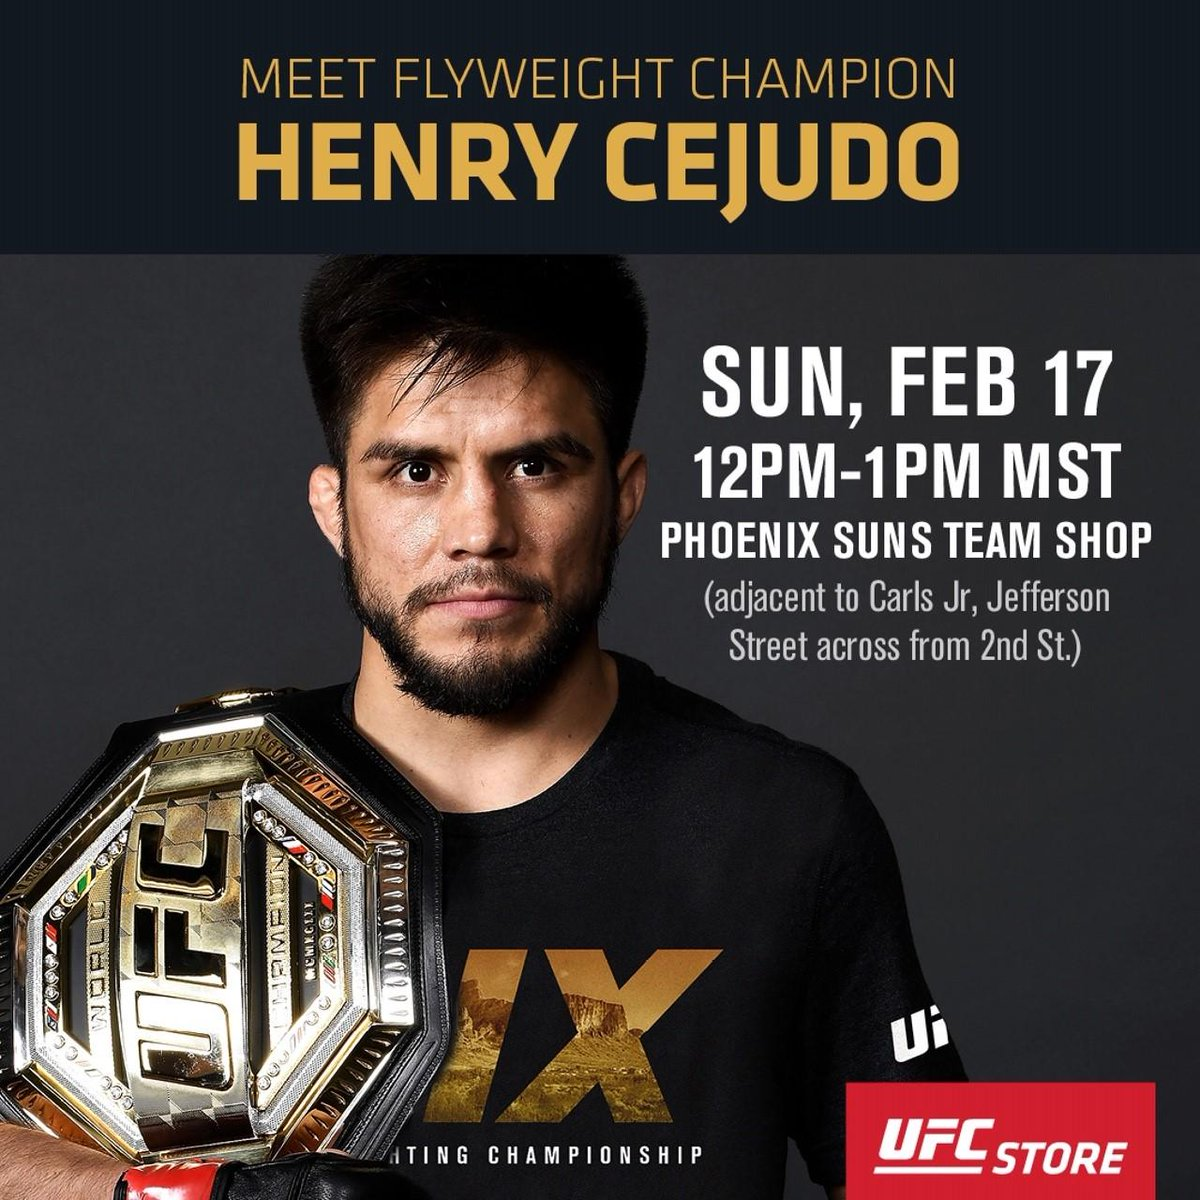 Today's the day, meet @ufc Flyweight Champion @HenryCejudo from 12-1pm MST by the Phoenix Suns Team Shop. #UFCPhoenix